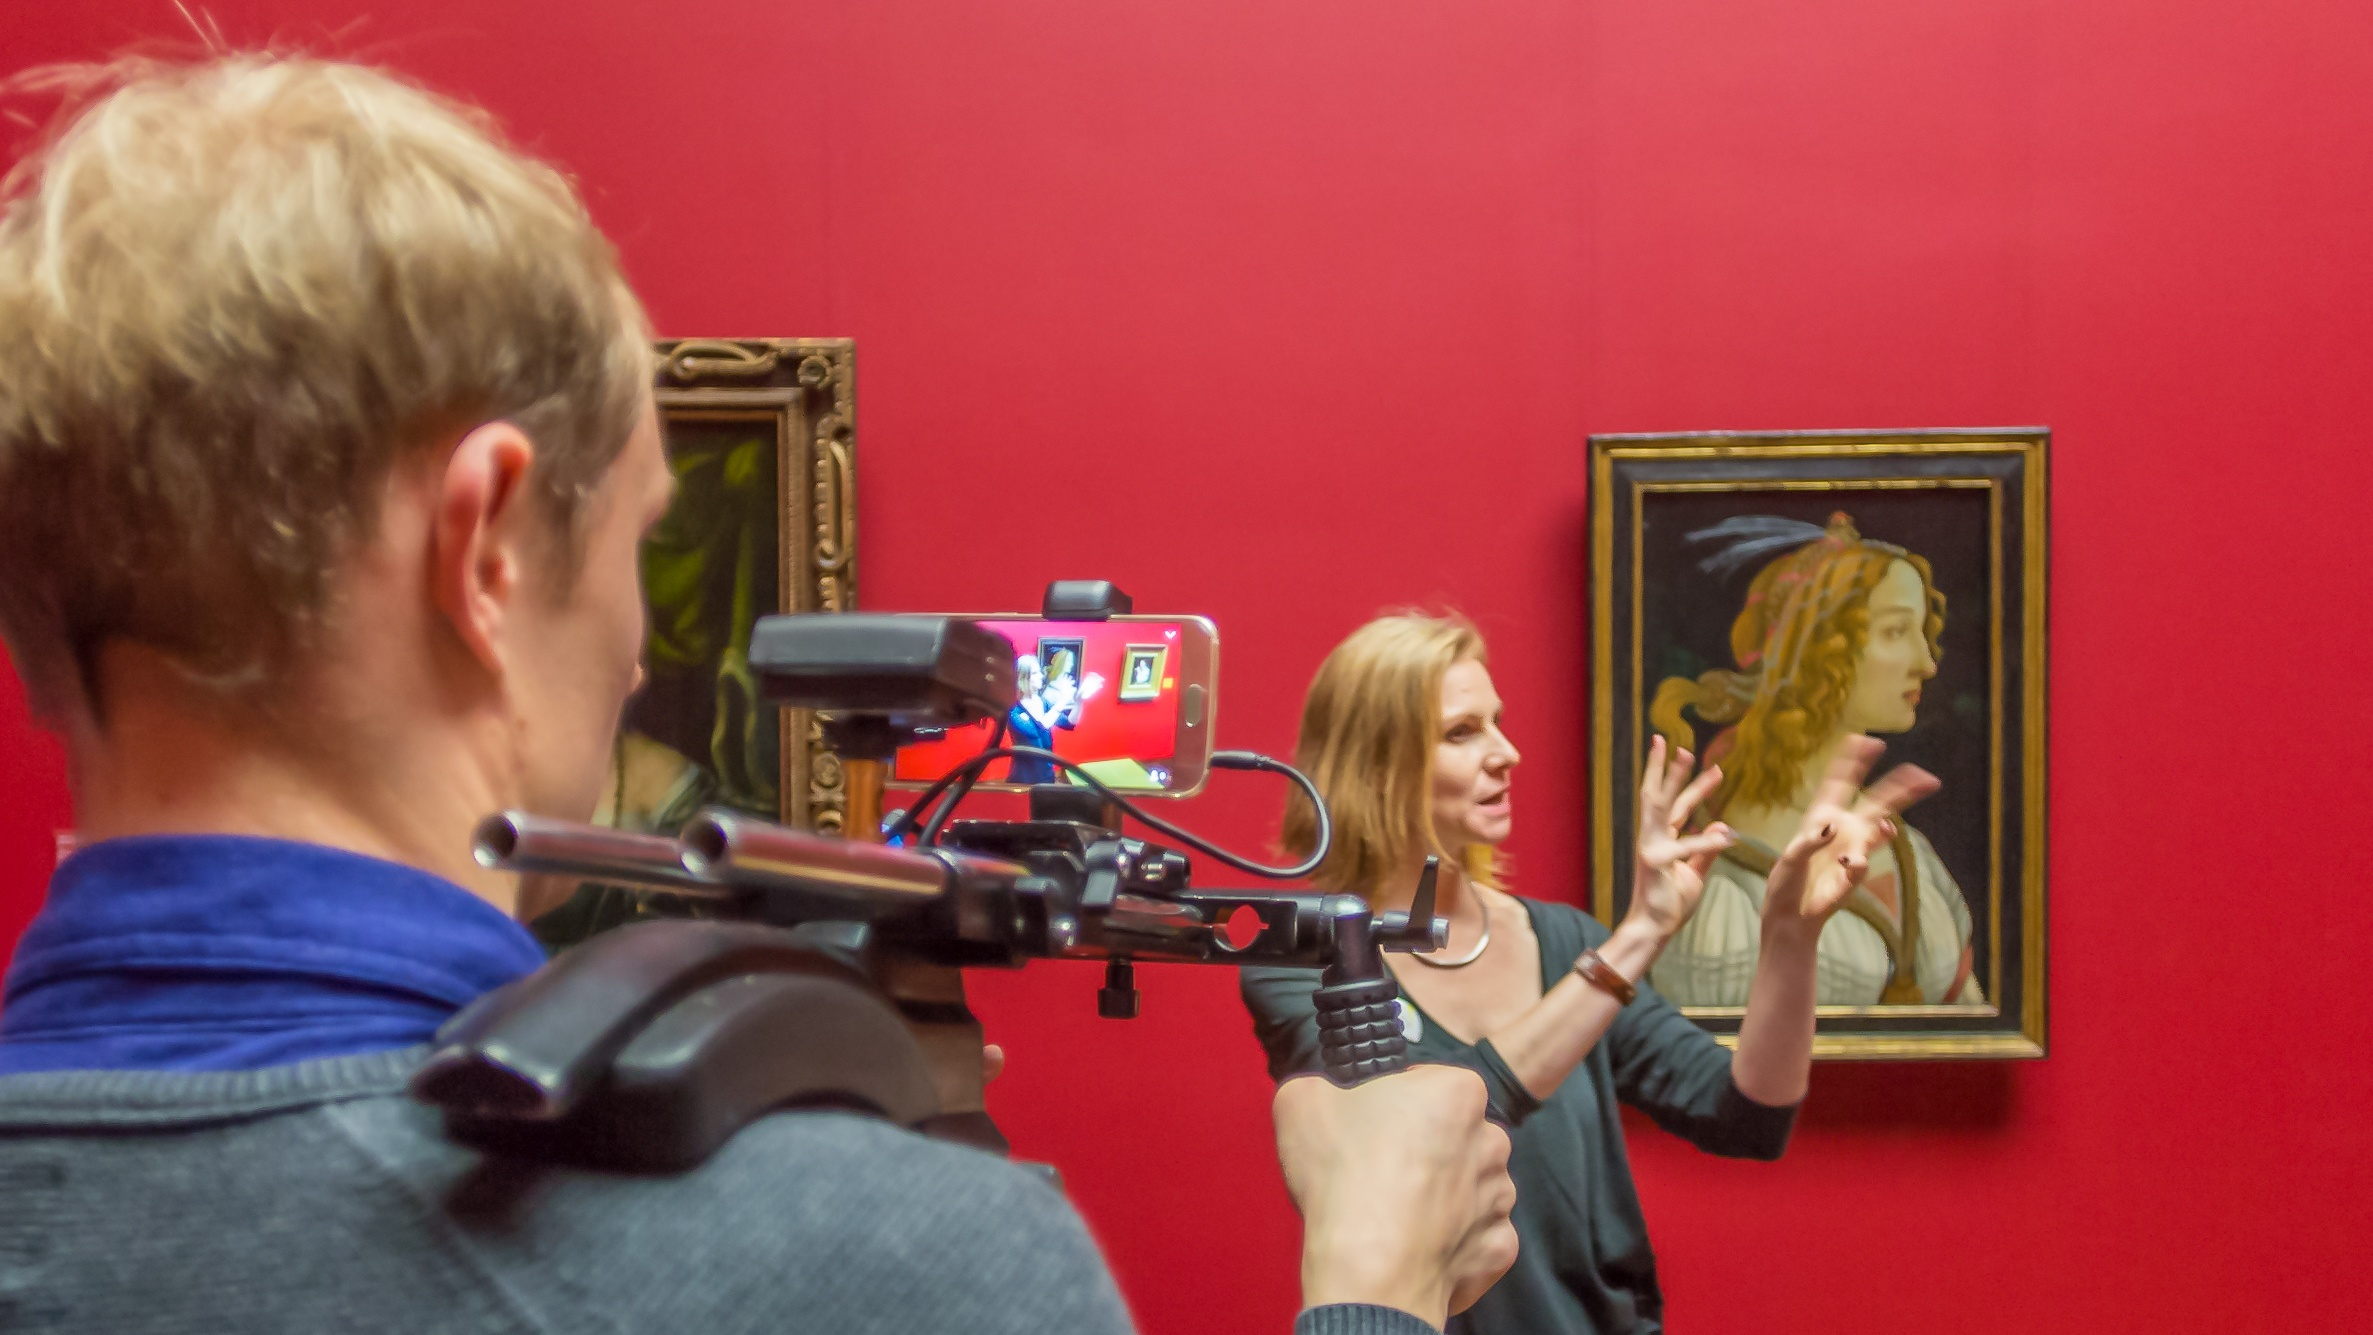 Periscope_app_streaming_a_guided_tour_in_Stdel_museum_Frankfurt-3308.jpg